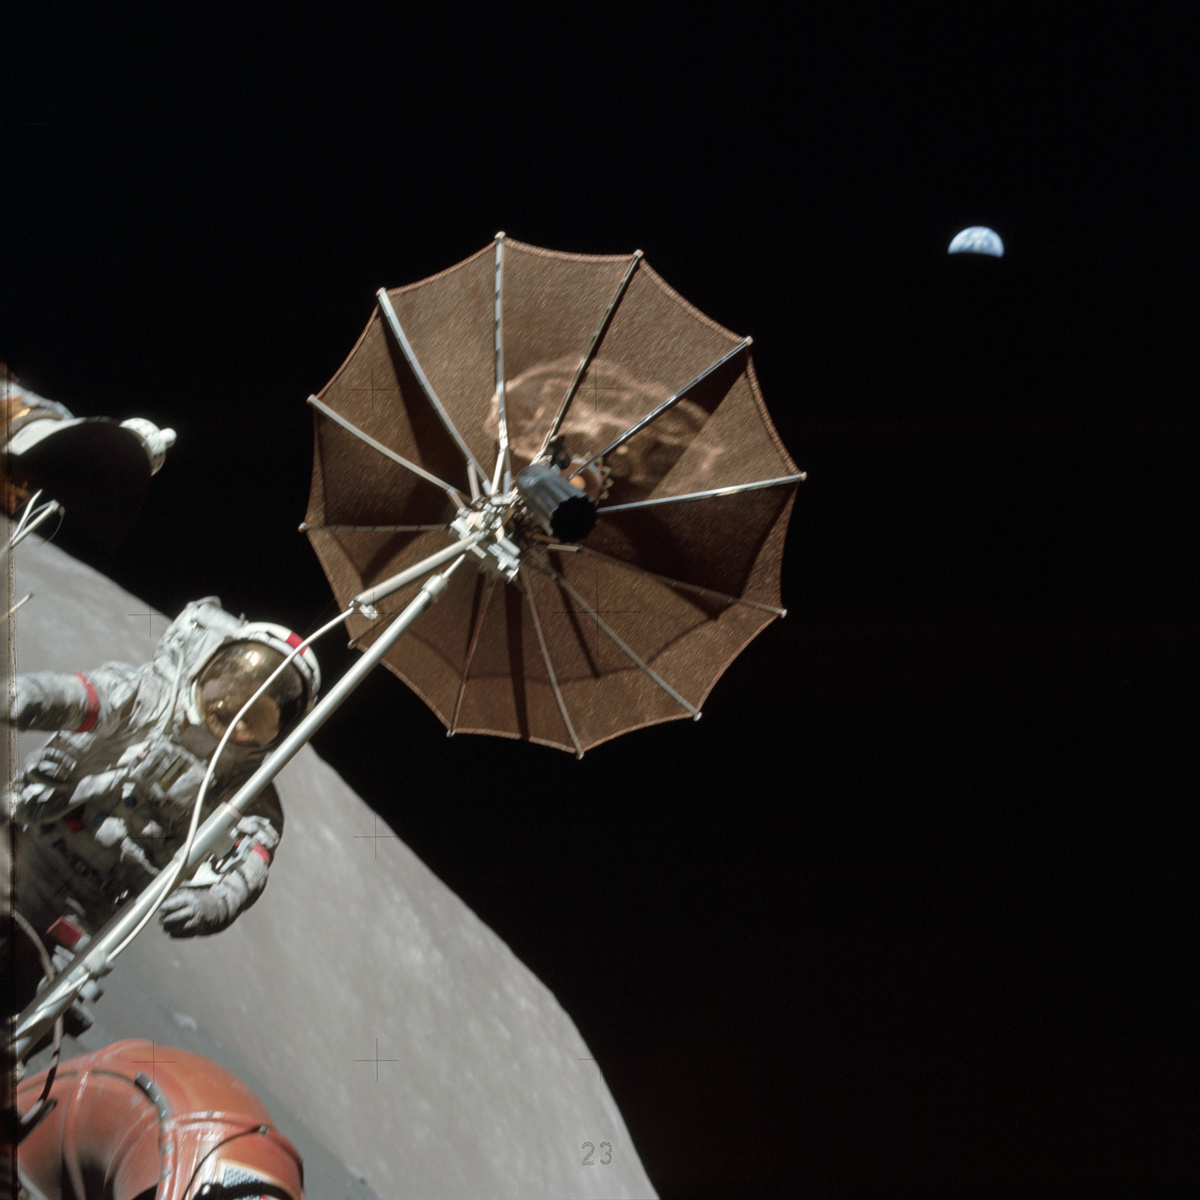 Astronaut on moon holding antenna with Earth in the background